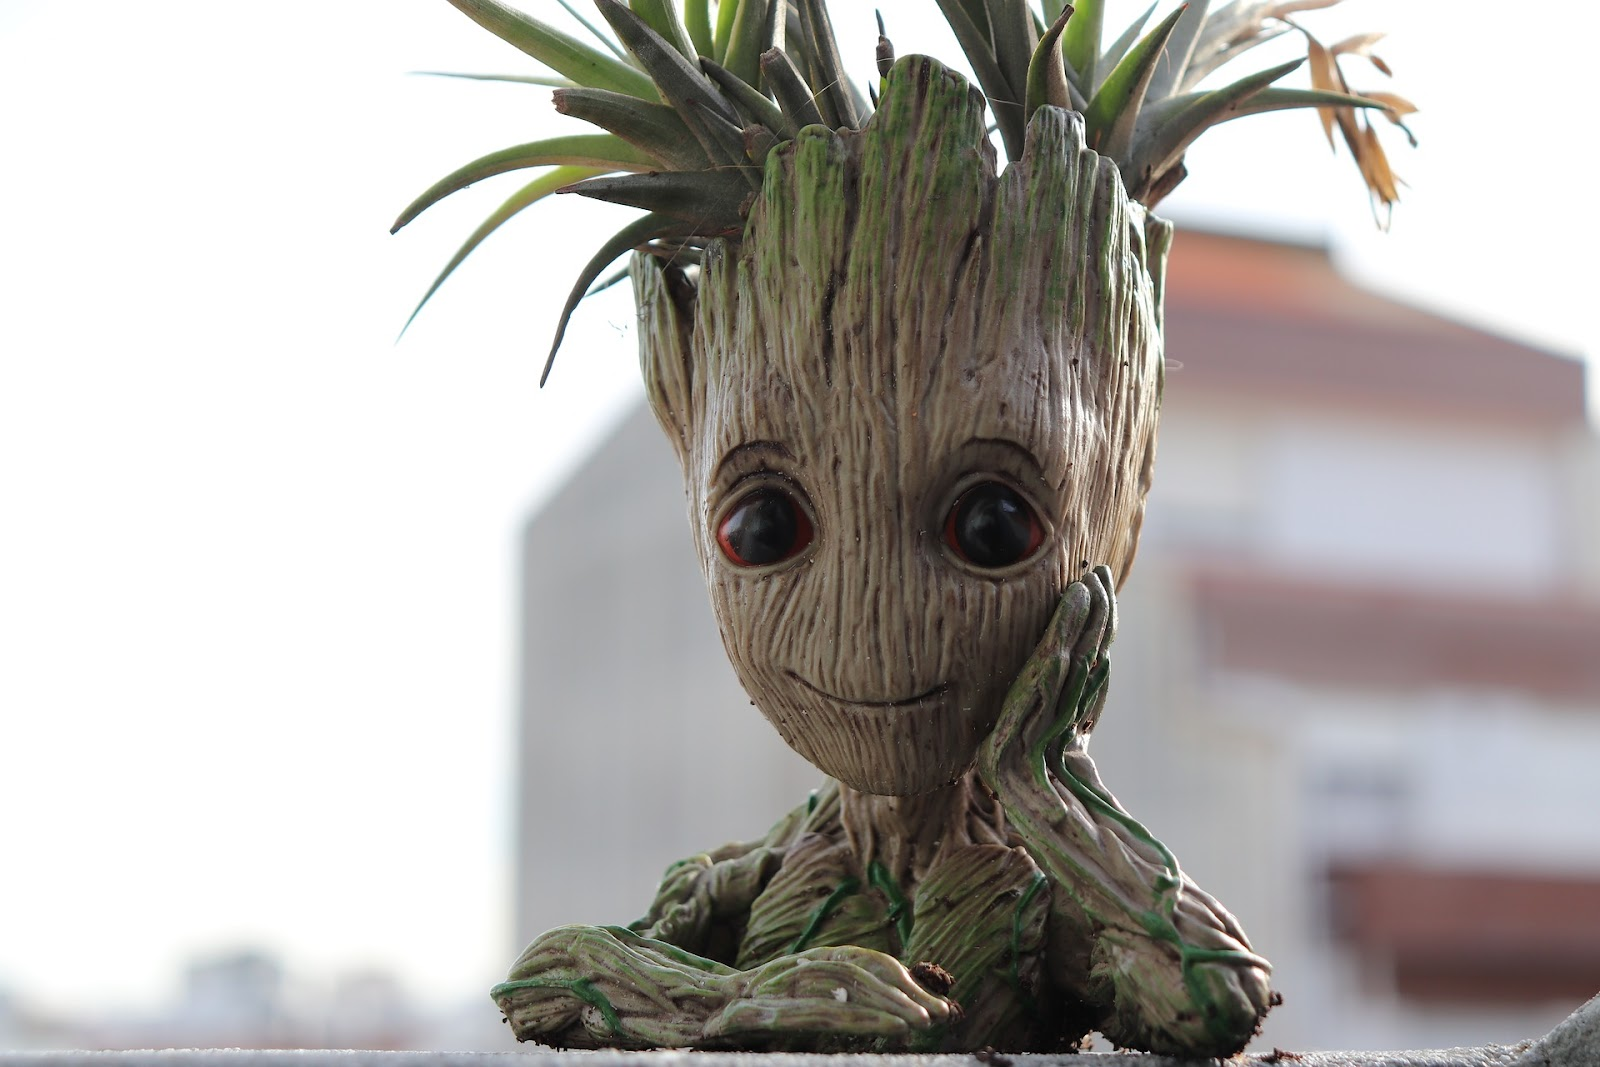 Groot planter container